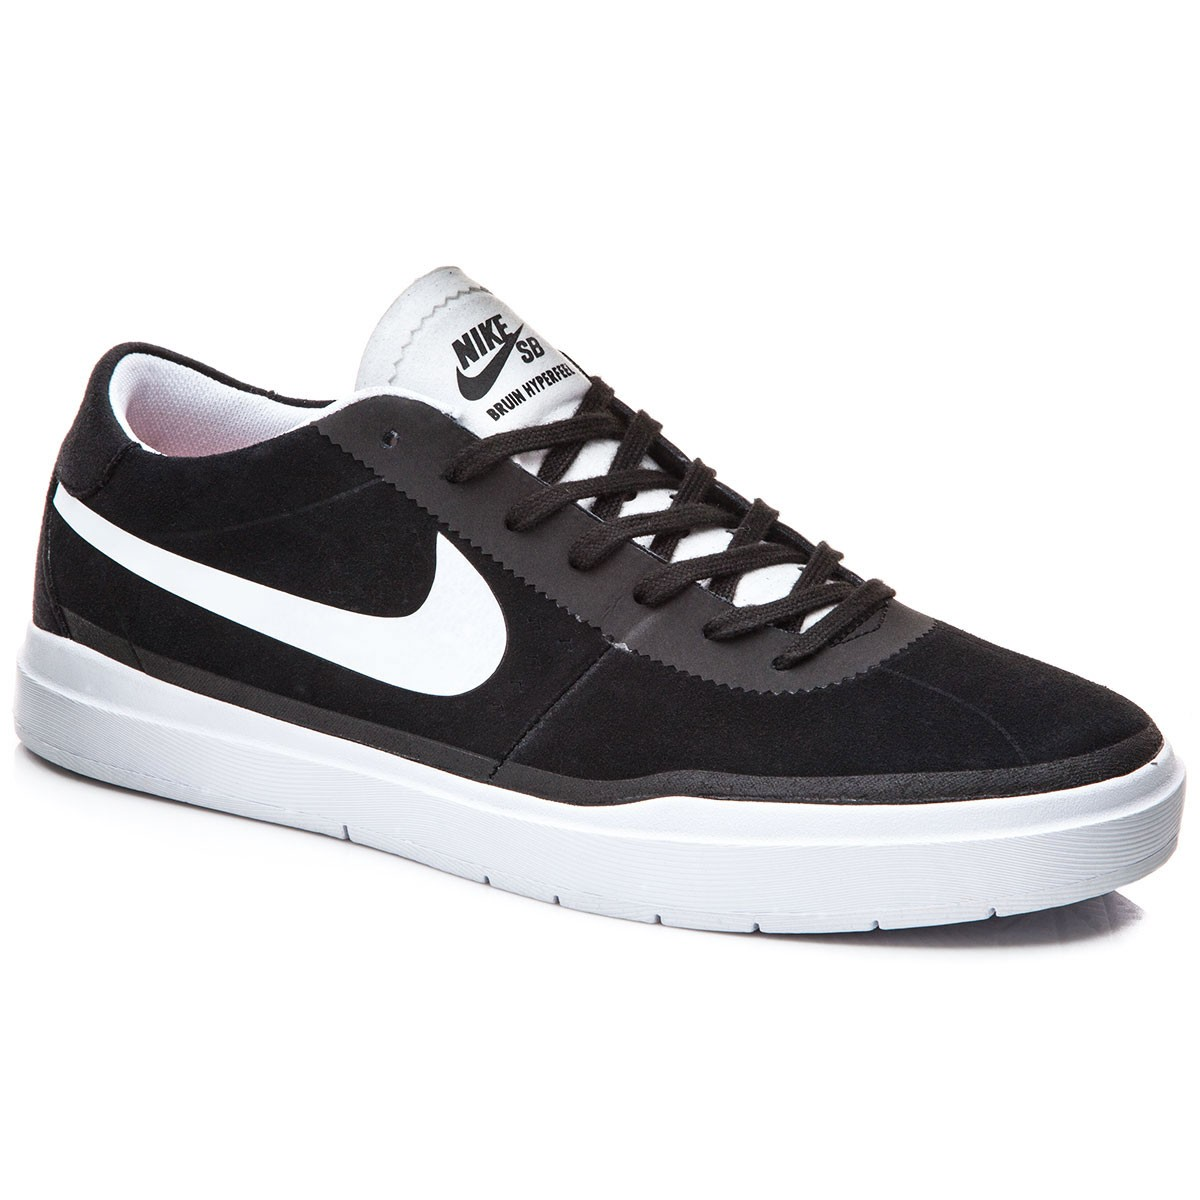 Nike Bruin Shoes For Sale